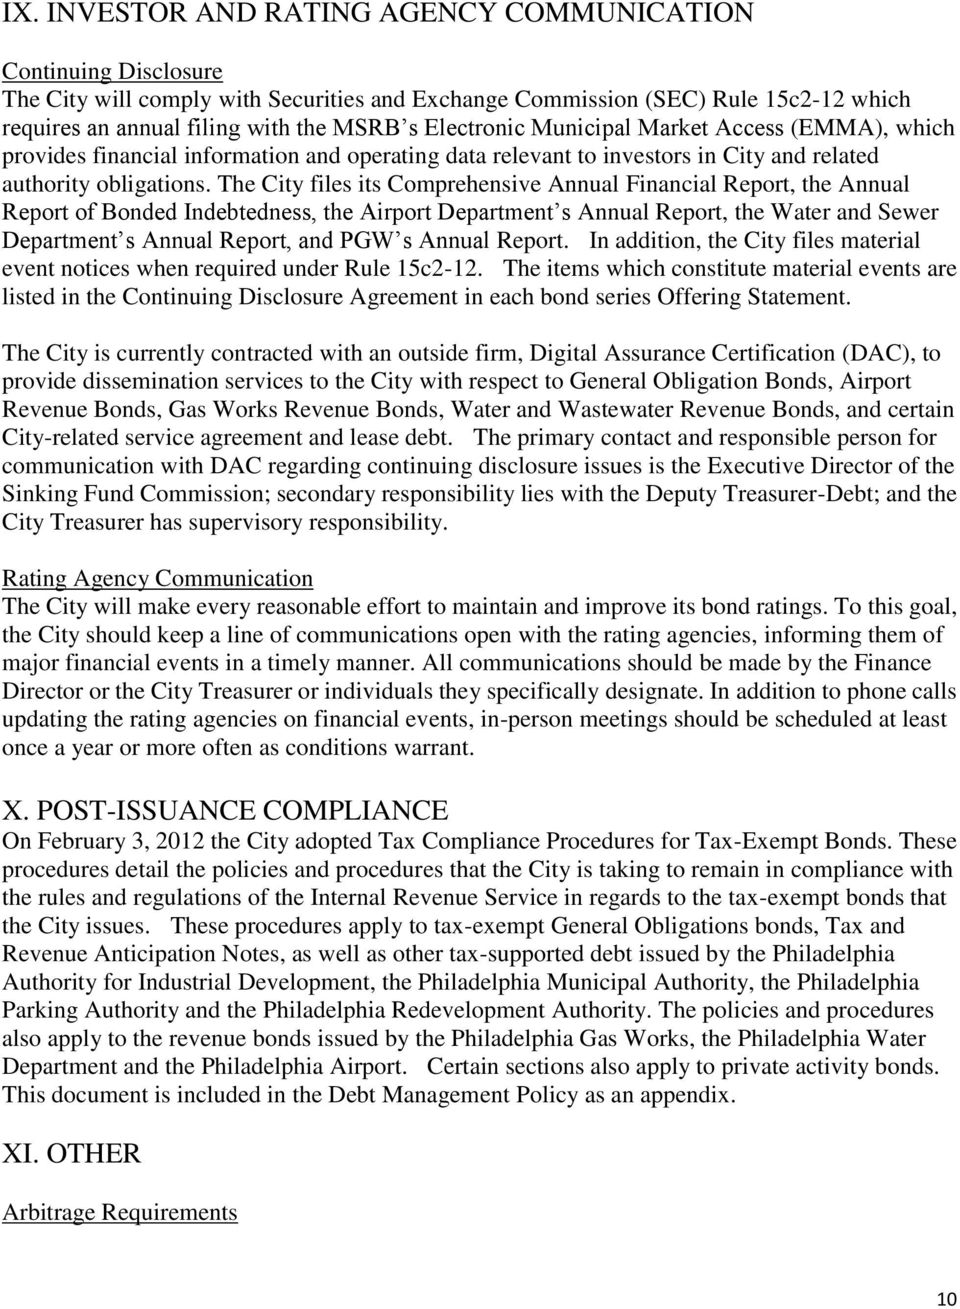 The City files its Comprehensive Annual Financial Report, the Annual Report of Bonded Indebtedness, the Airport Department s Annual Report, the Water and Sewer Department s Annual Report, and PGW s